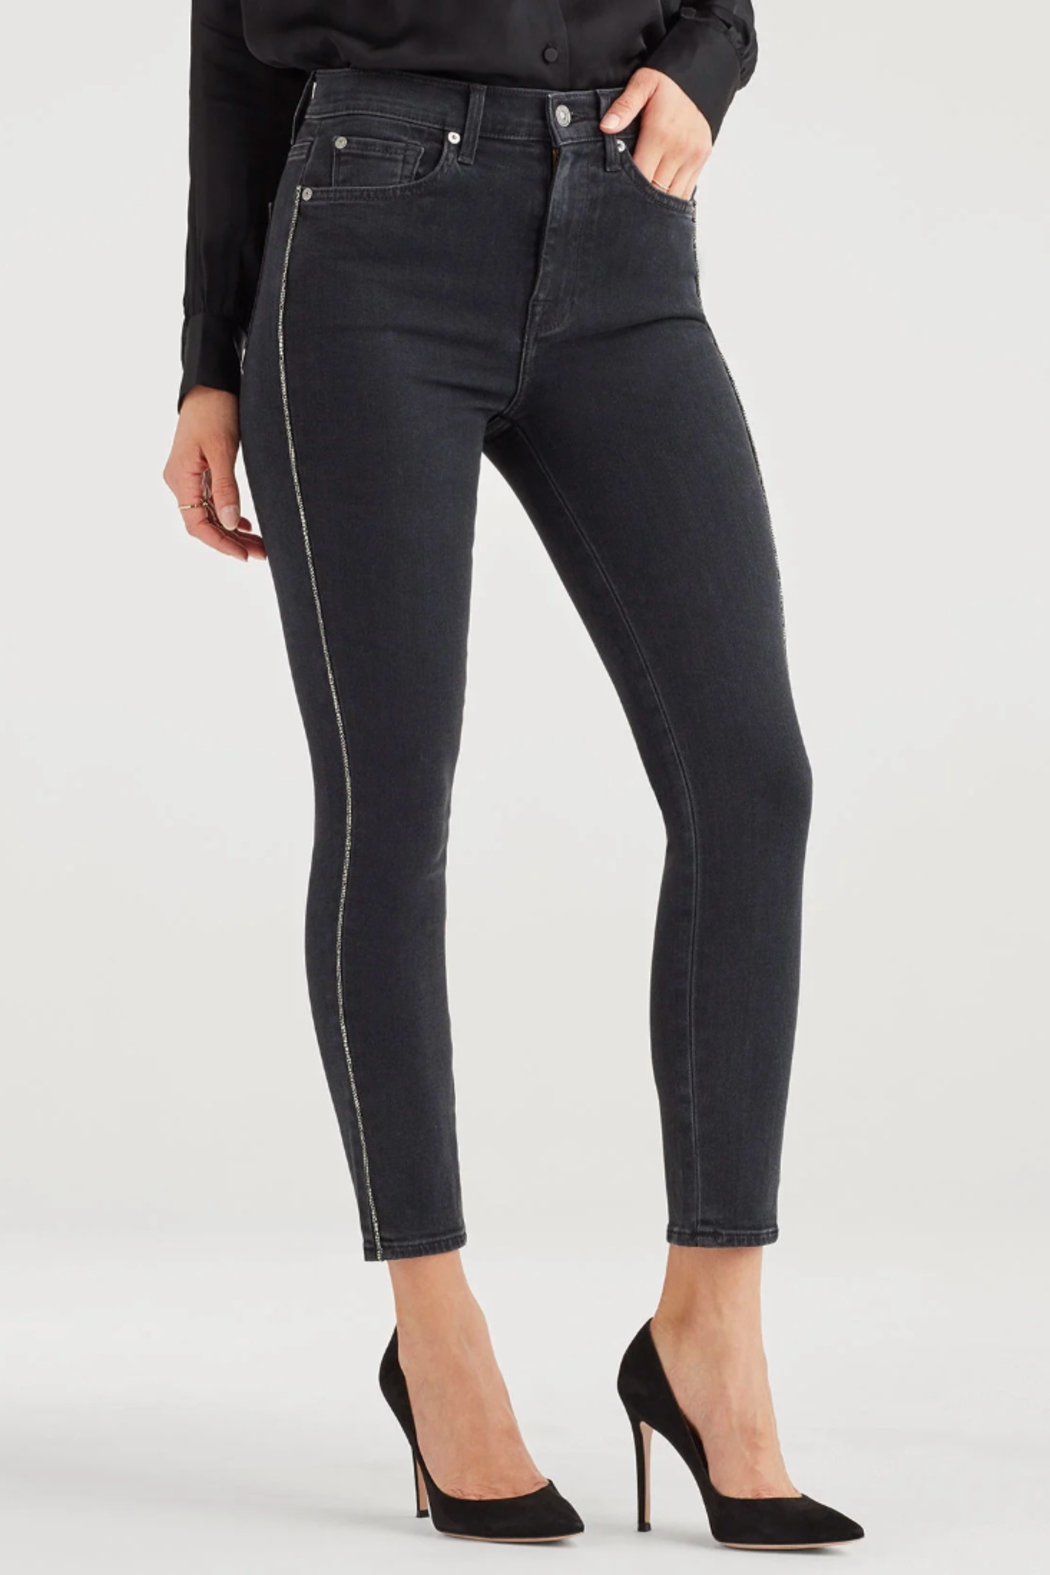 7 For all Mankind Luxe Vintage High Waist Ankle Skinny with Snake Piping in Moon Shadow - Front Full Image